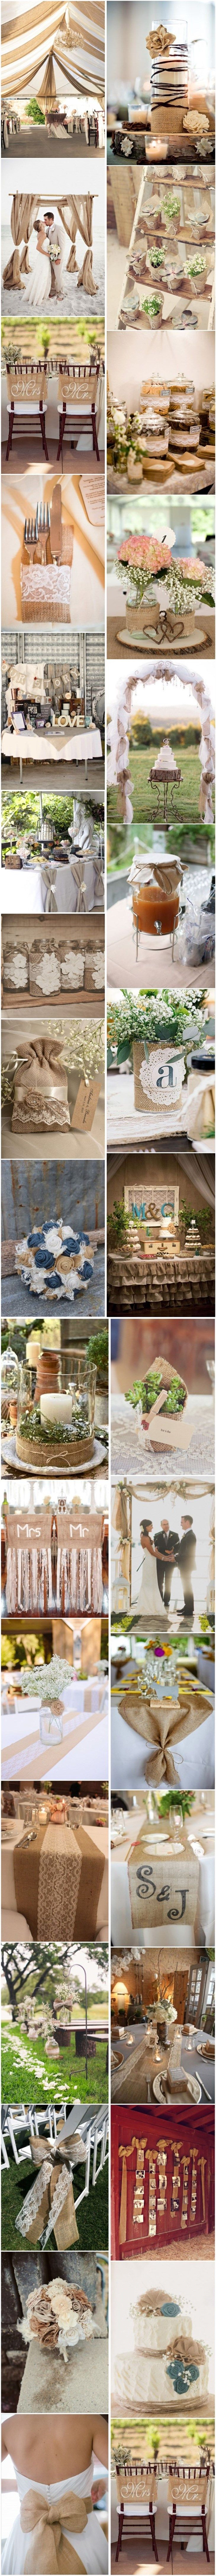 50+ Chic-Rustic Burlap Wedding Ideas